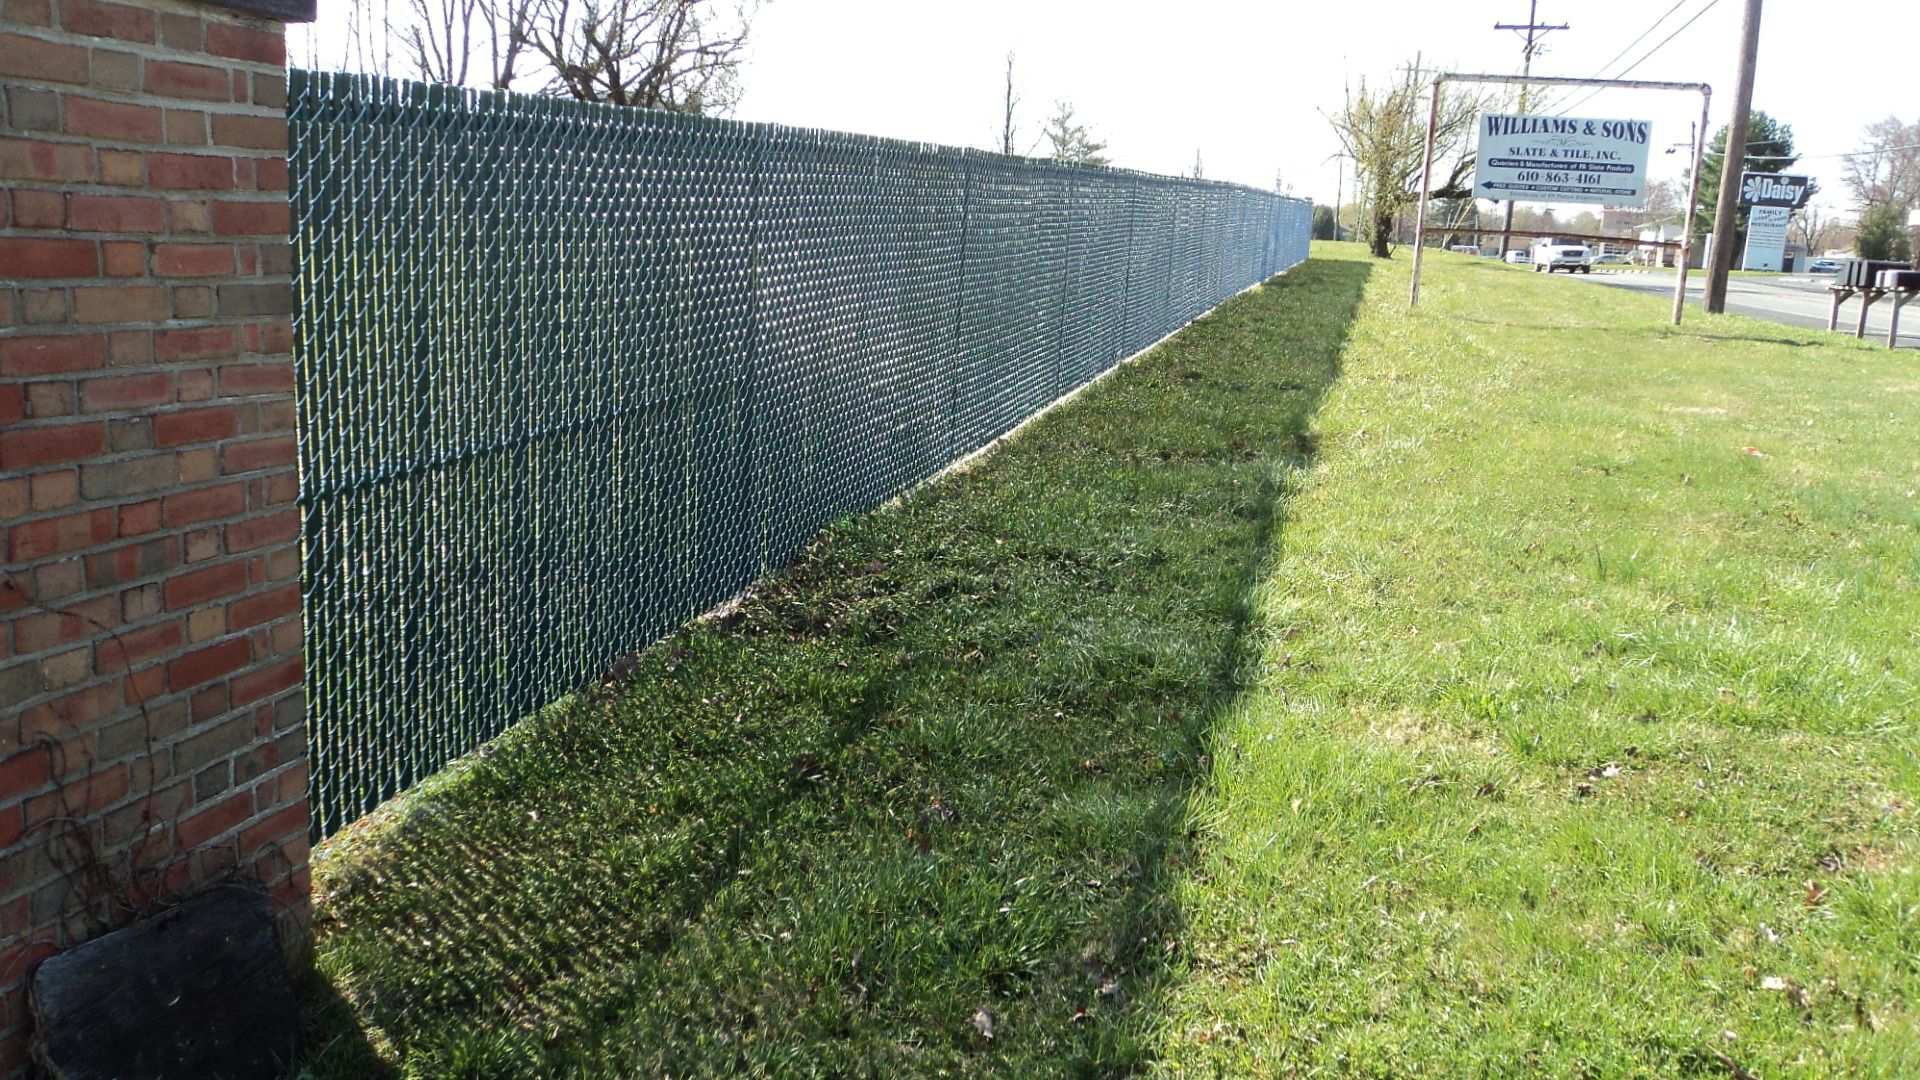 Galvanized Chain Link Fence With Green Pvc Privacy Slats Do You Have An Existing Chain Link Fence And Want Some Privacy Fence Styles Chain Link Fence Fence